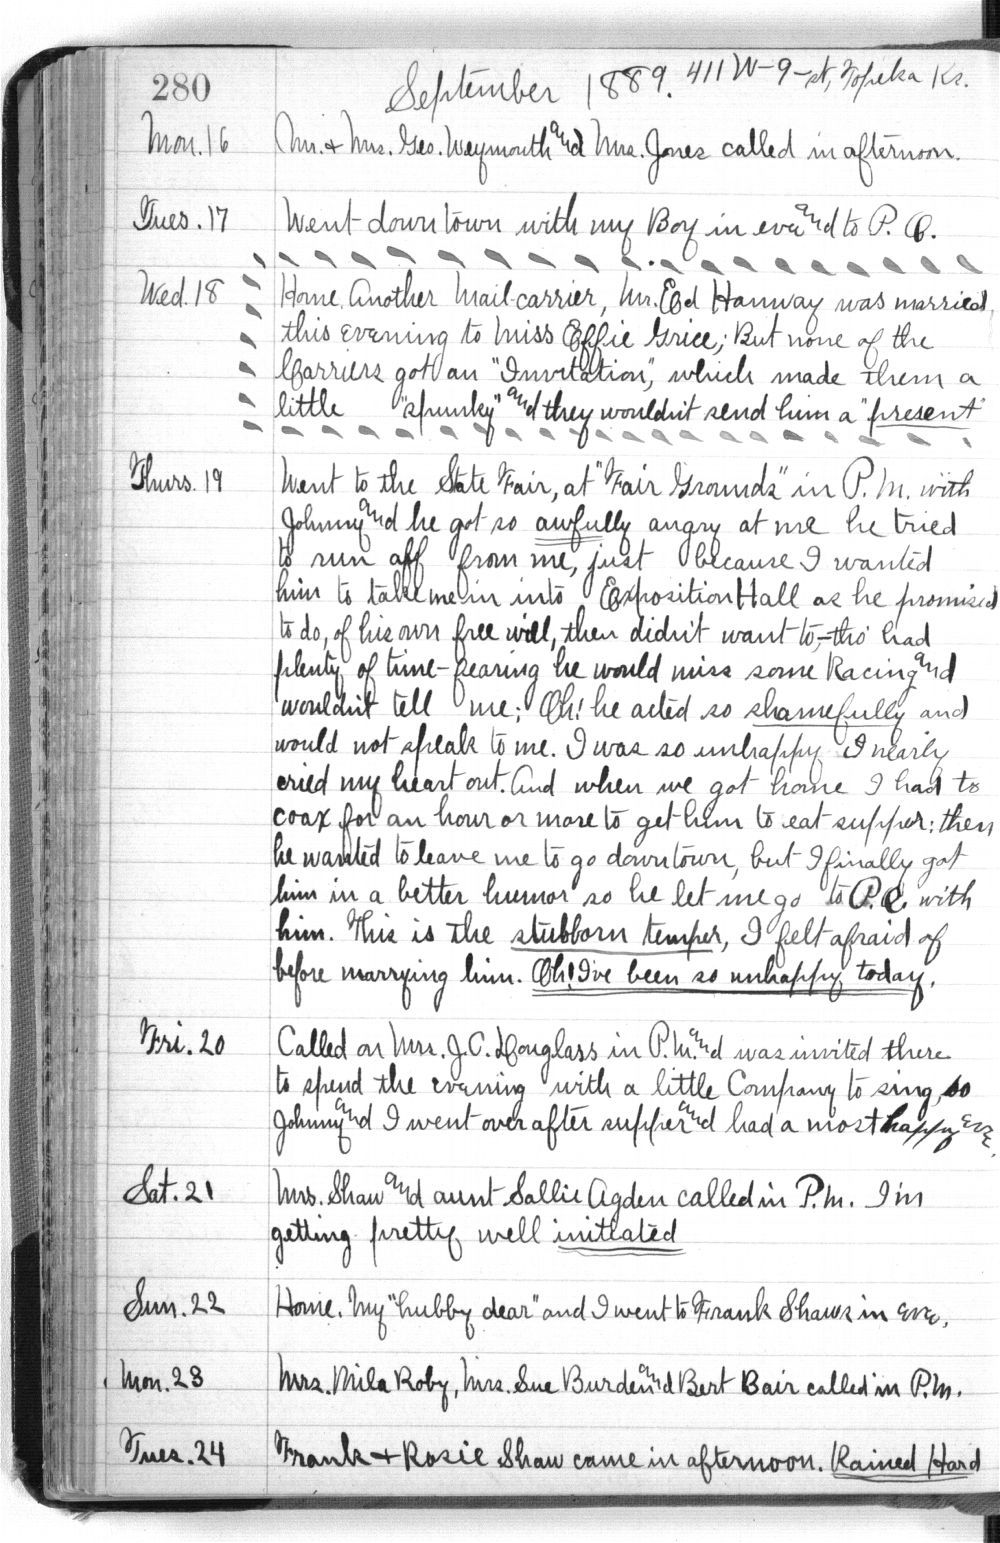 Martha Farnsworth diary - 280